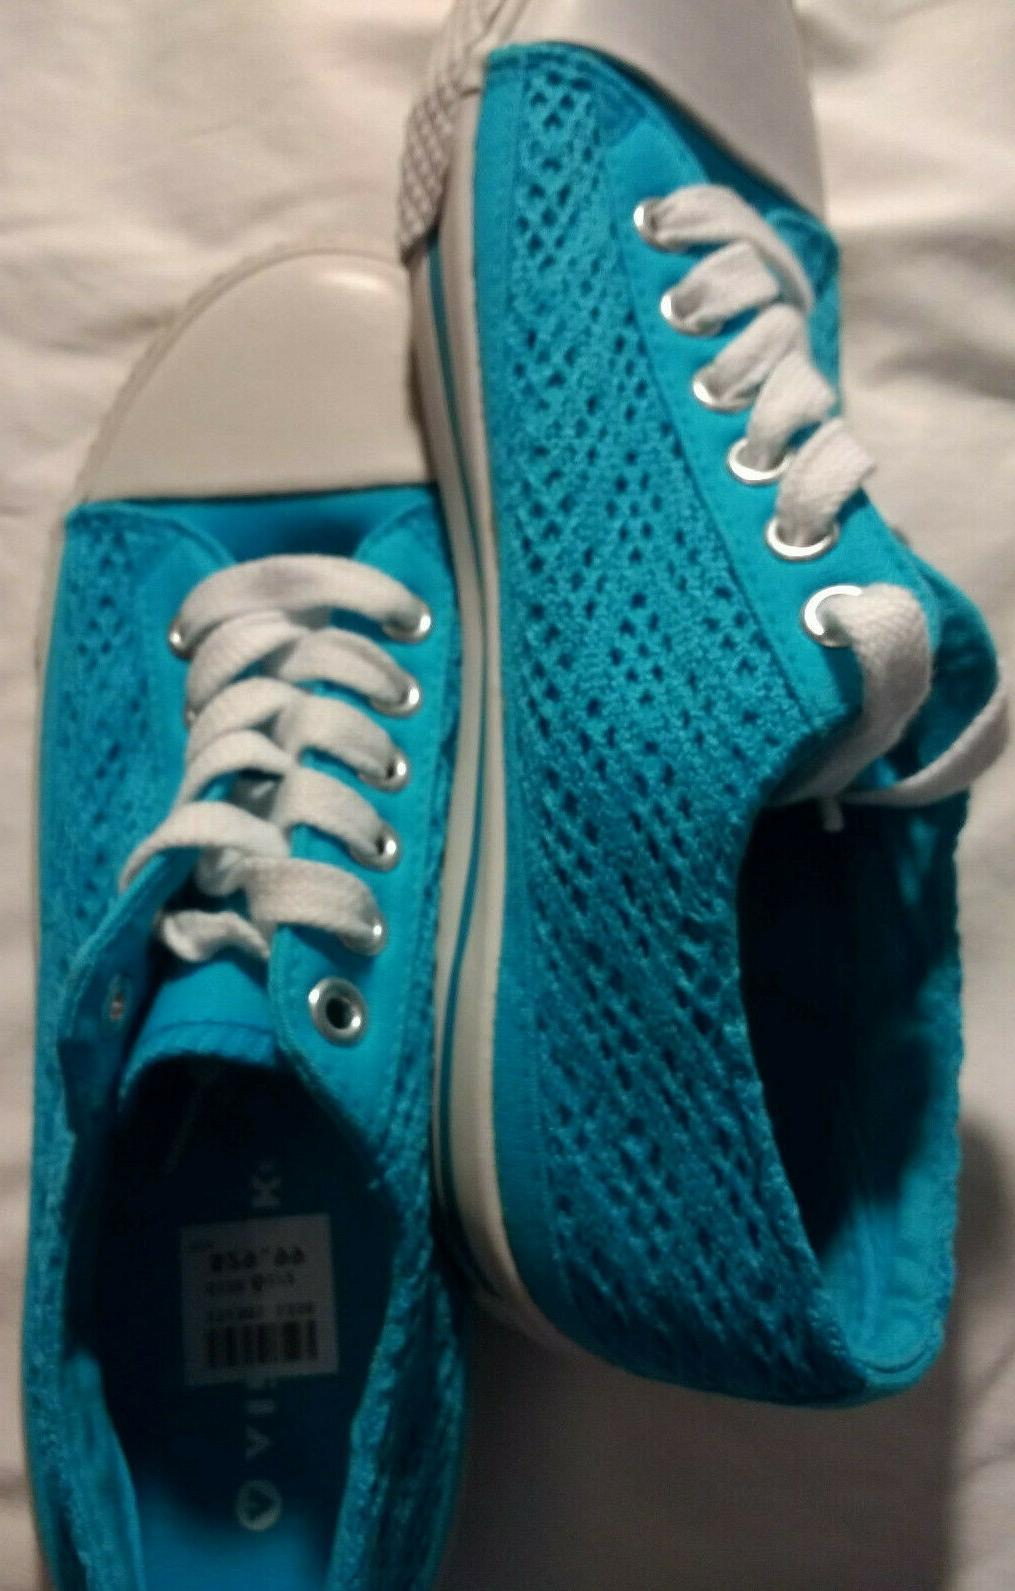 women s low top sneakers turquoise blue